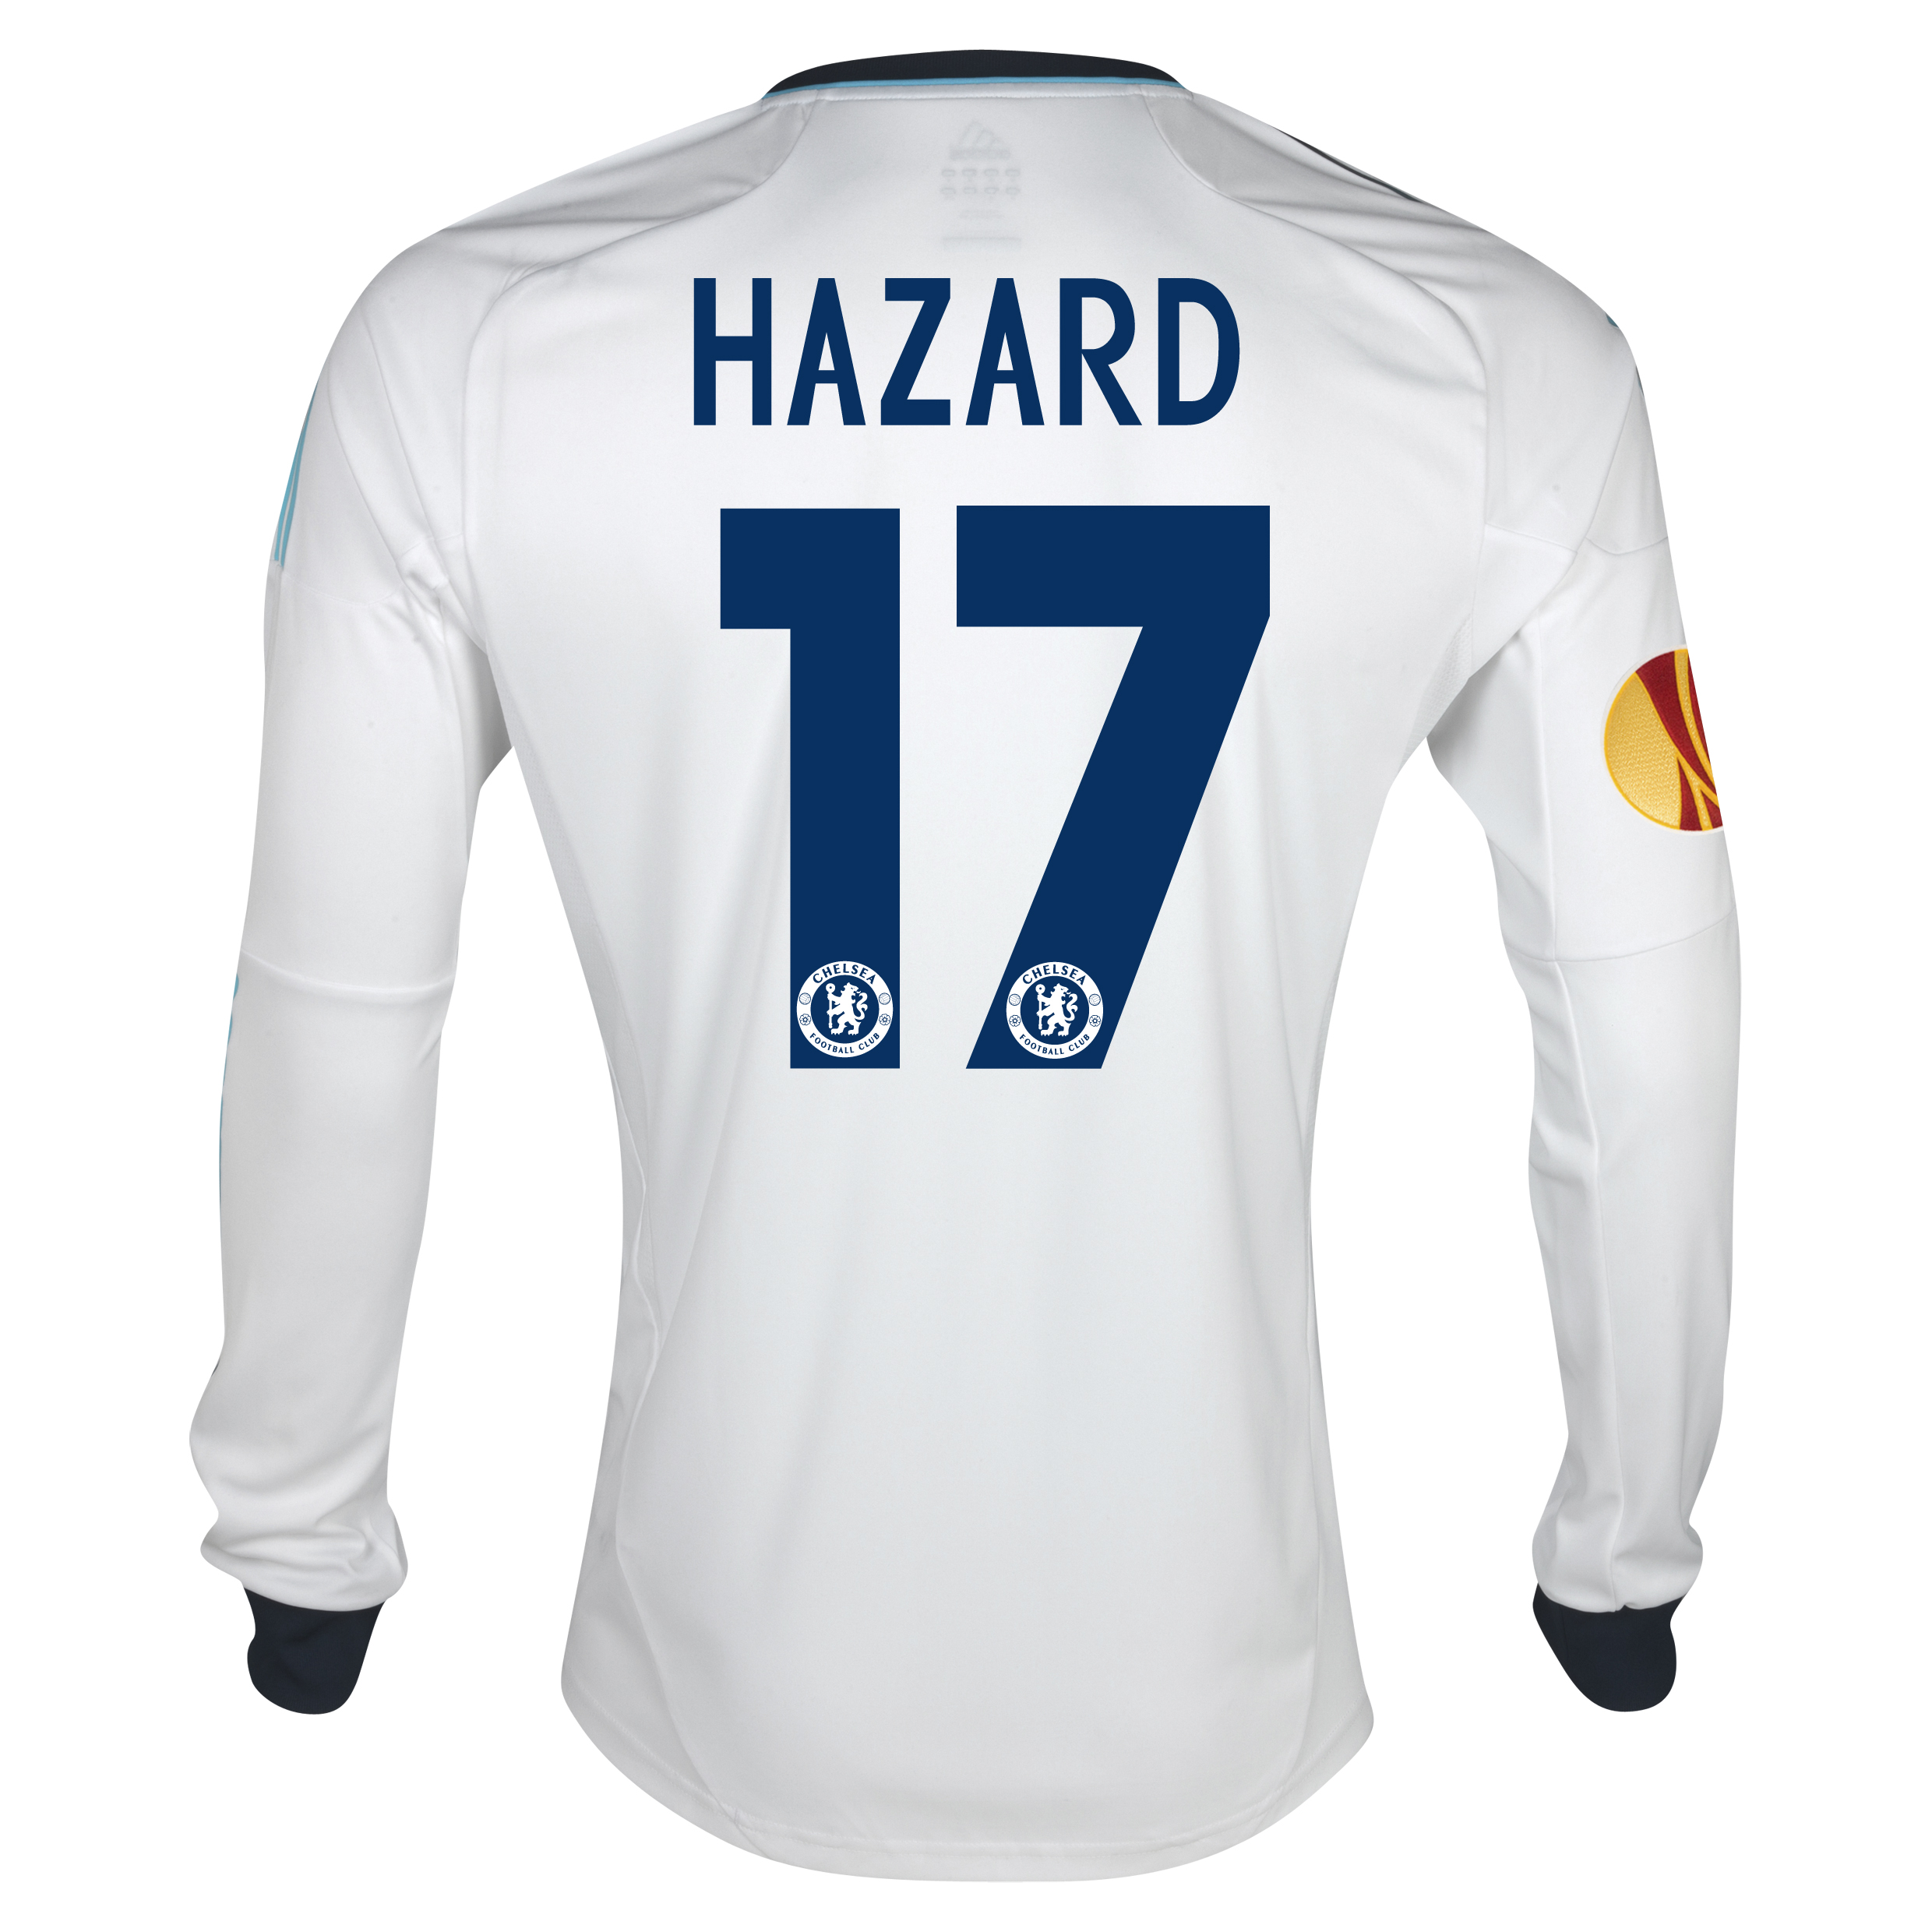 Chelsea UEFA Europa League Away Shirt 2012/13 - Long Sleeved with Hazard 17 printing Including Europa Badge